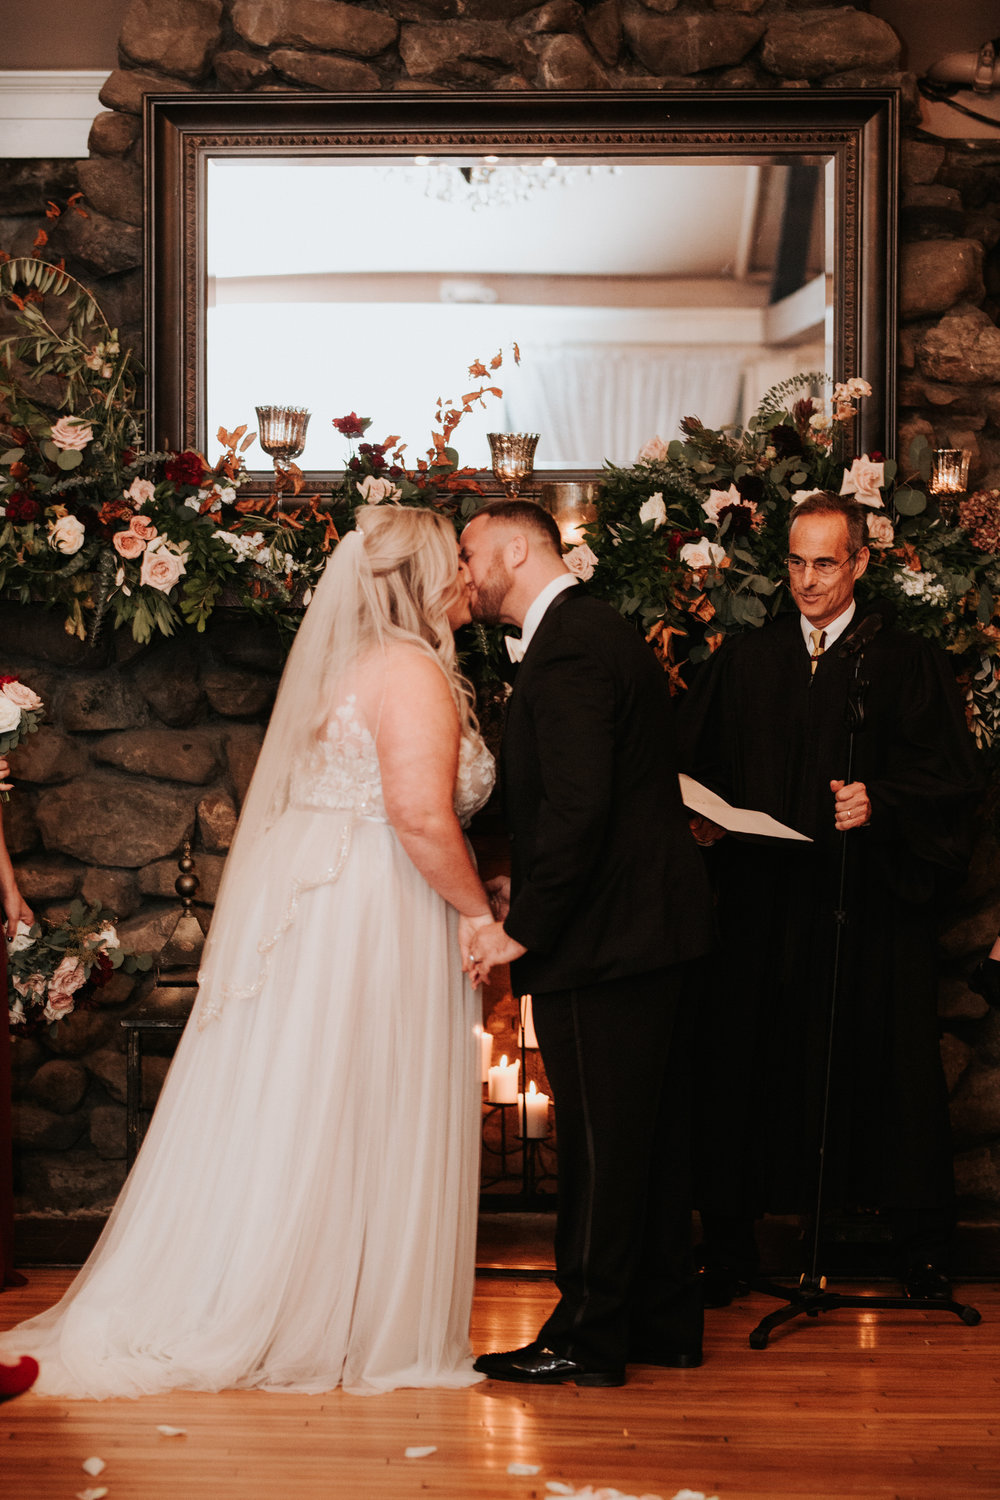 Bride and groom at Old Daley Schenectady wedding